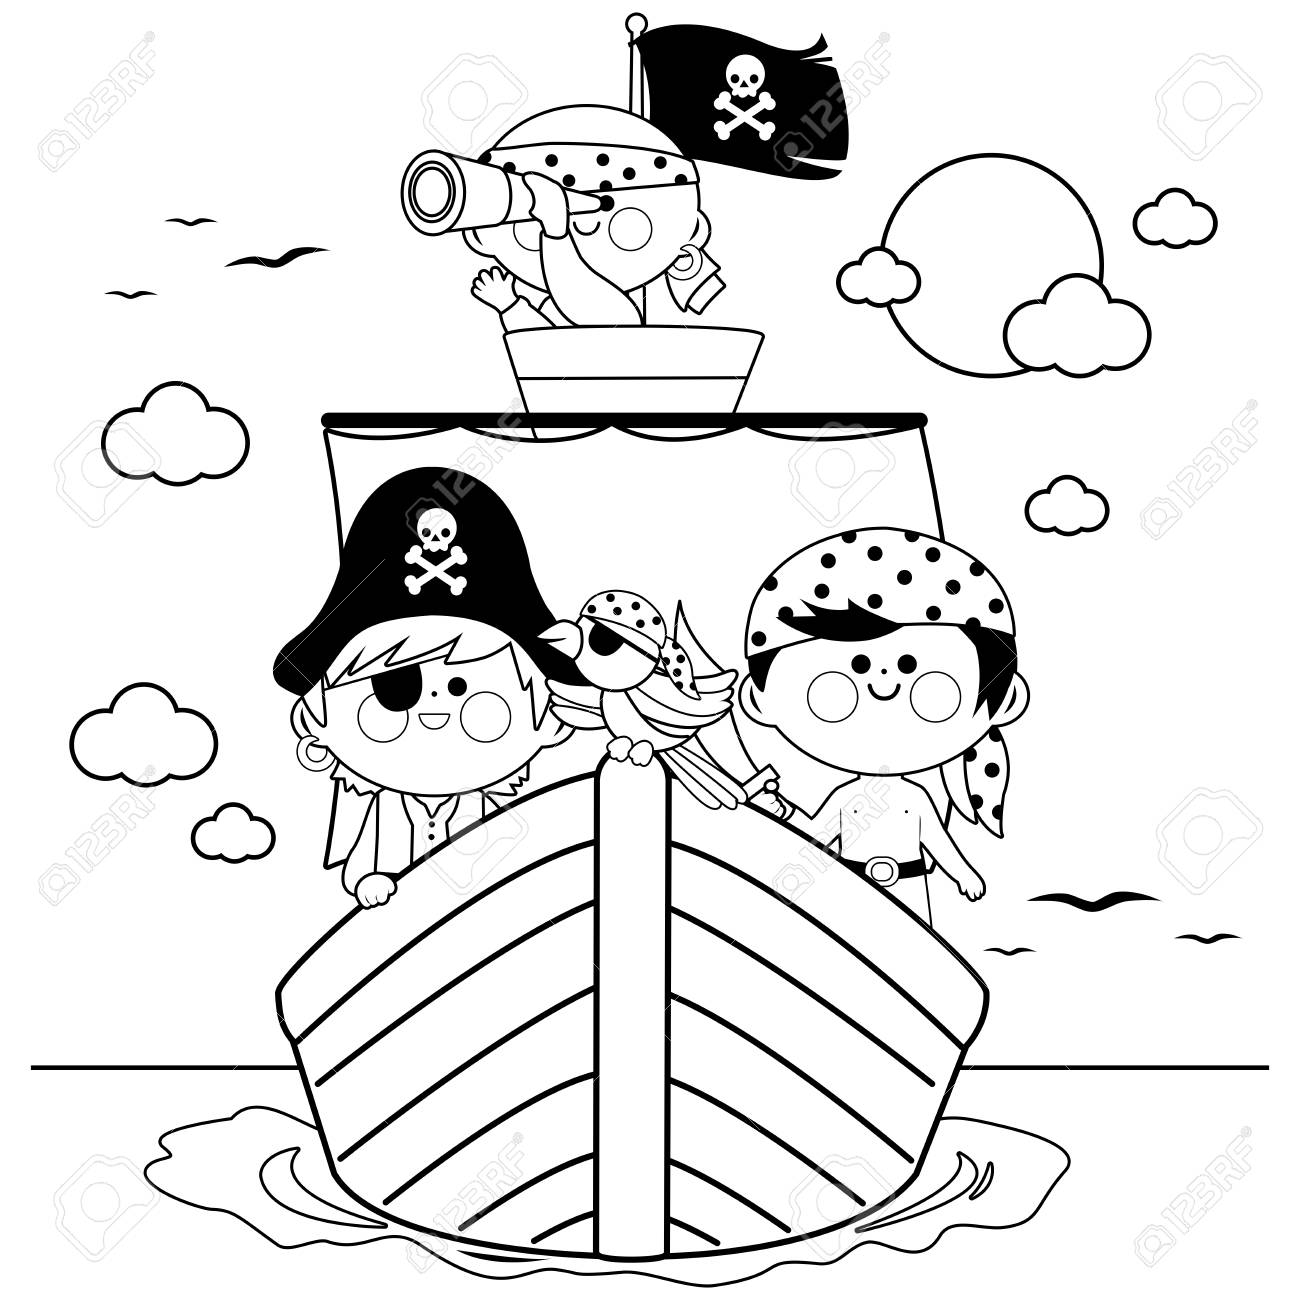 Pirates sailing on a ship at the sea black and white coloring